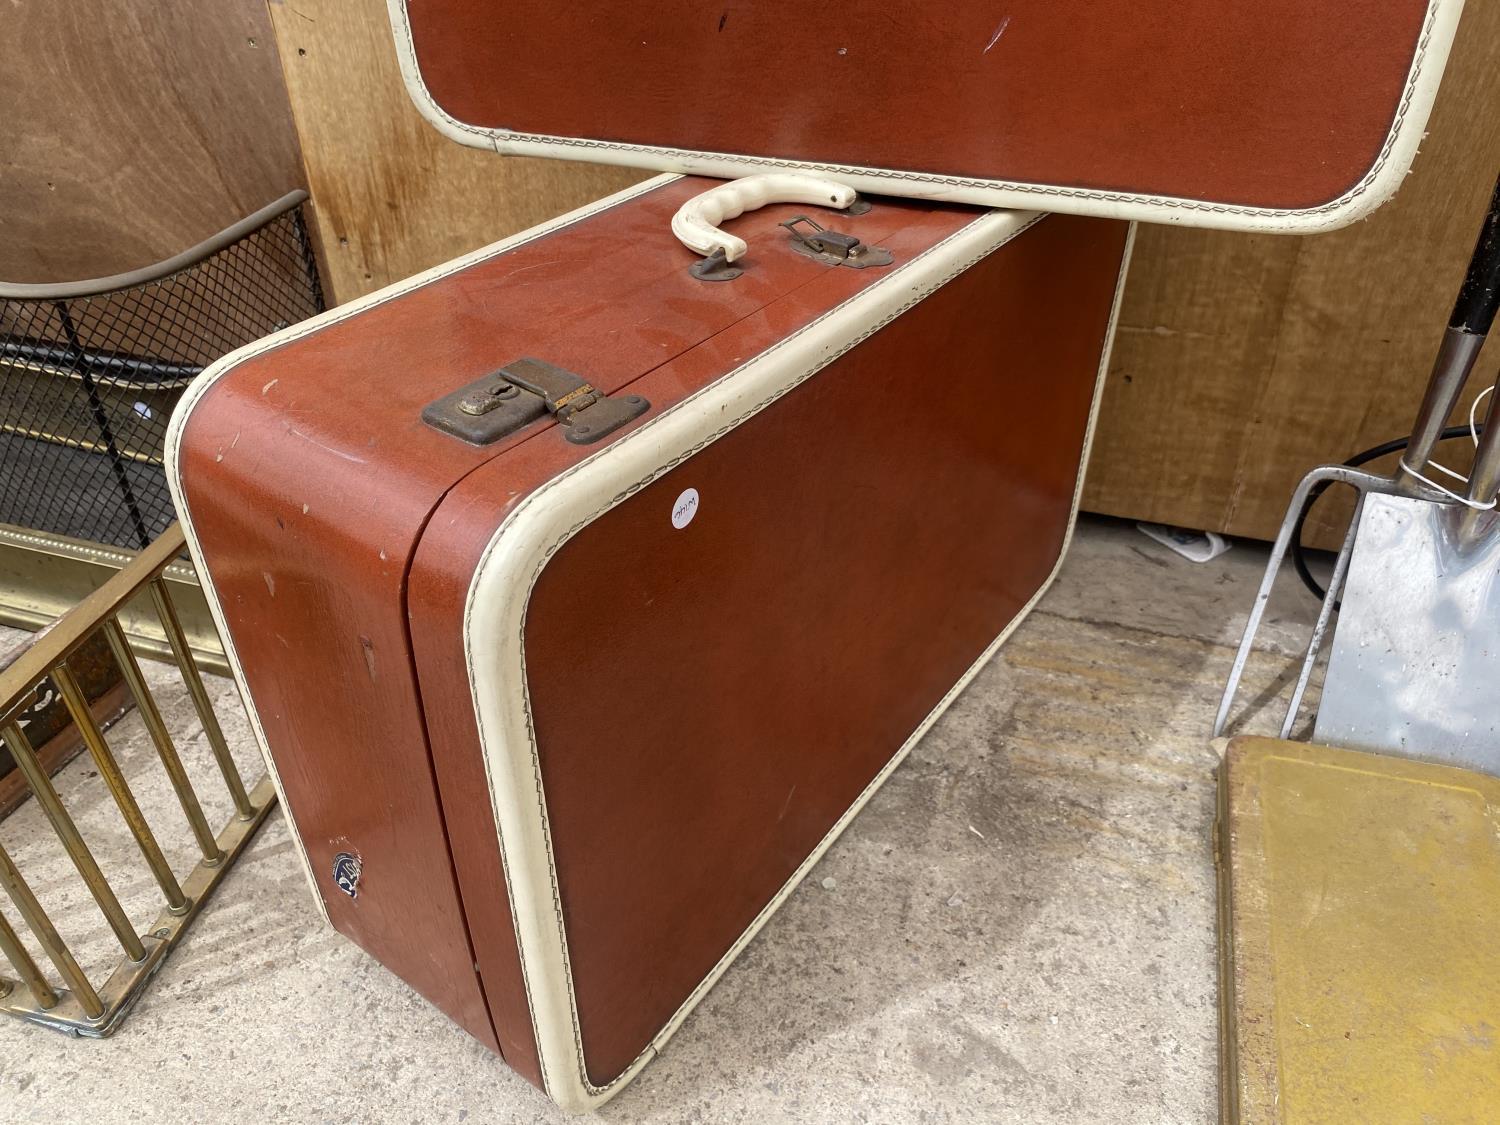 A PAIR OF VINTAGE LEATHER TRAVEL CASES - Image 3 of 4